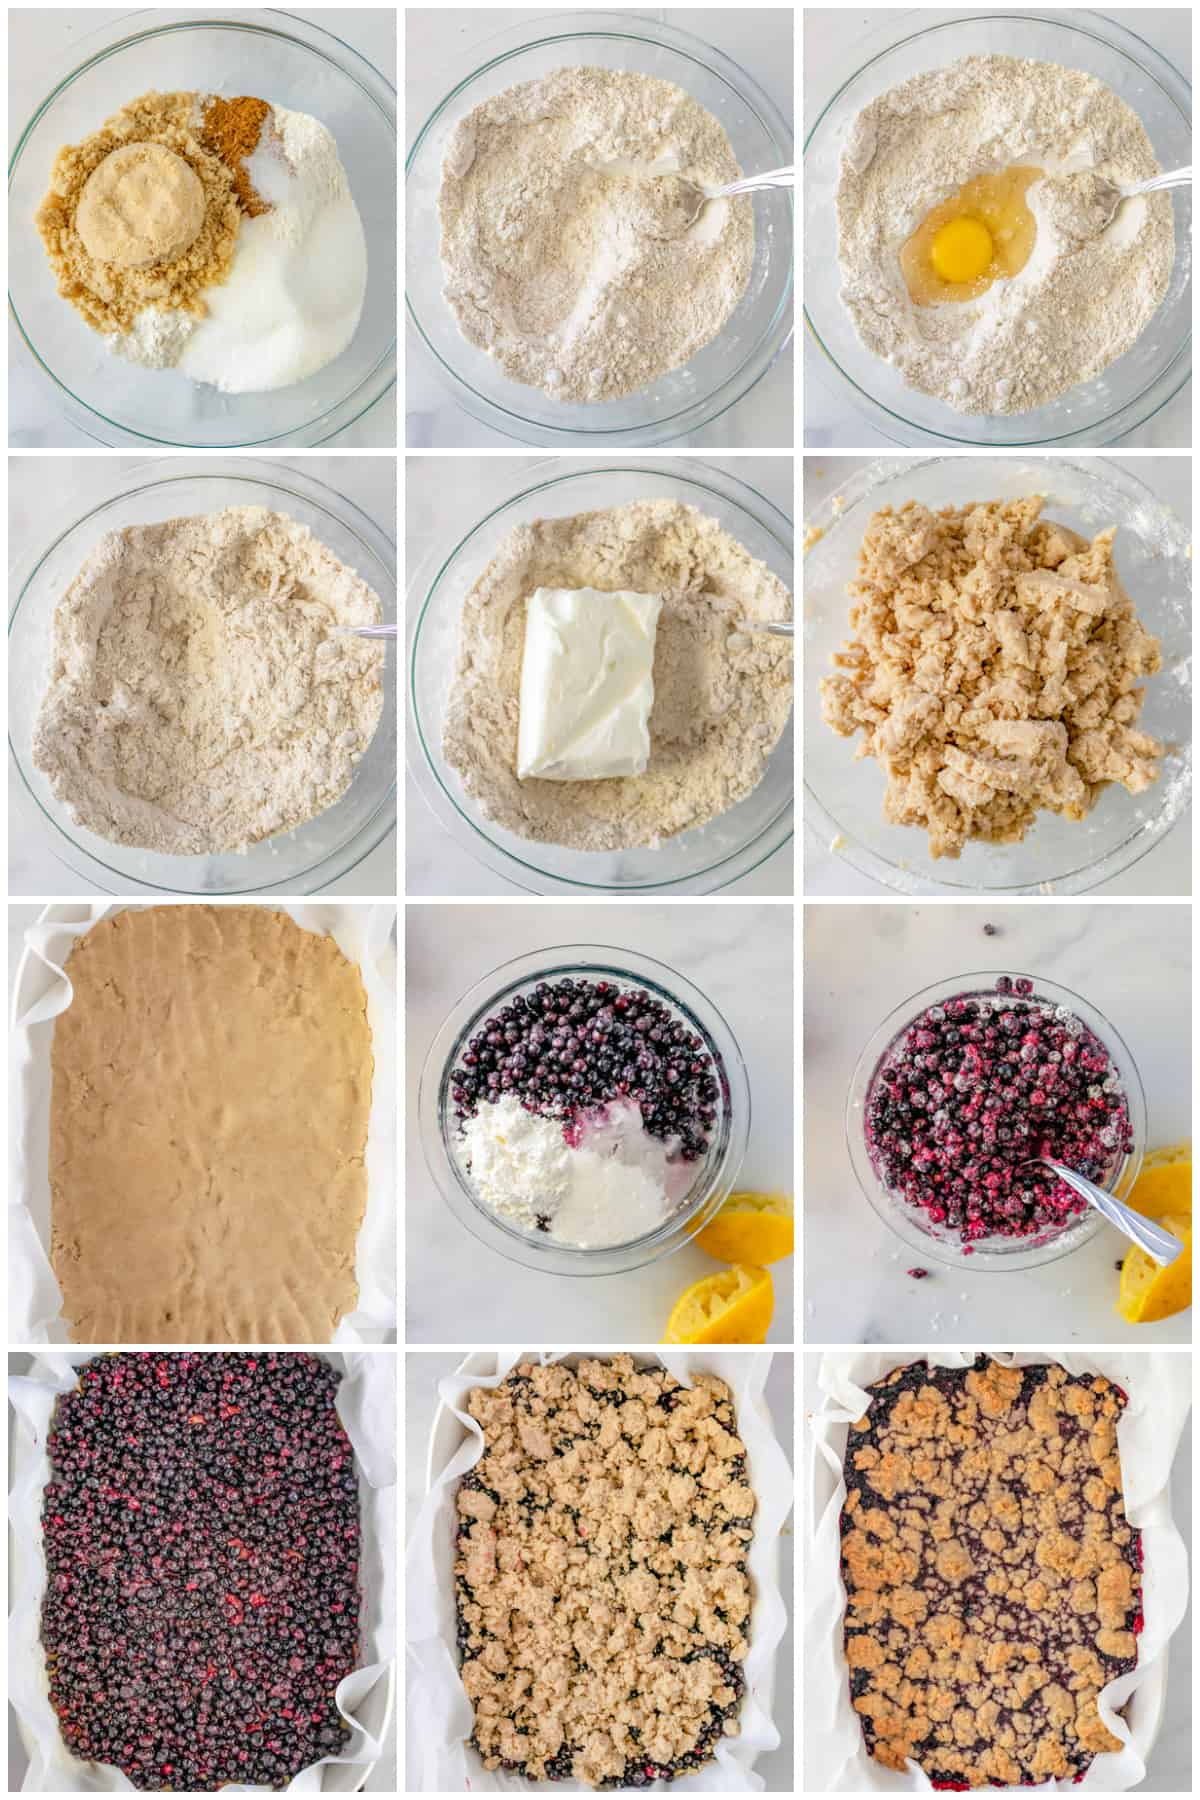 Step by step photos on how to make Blueberry Bars